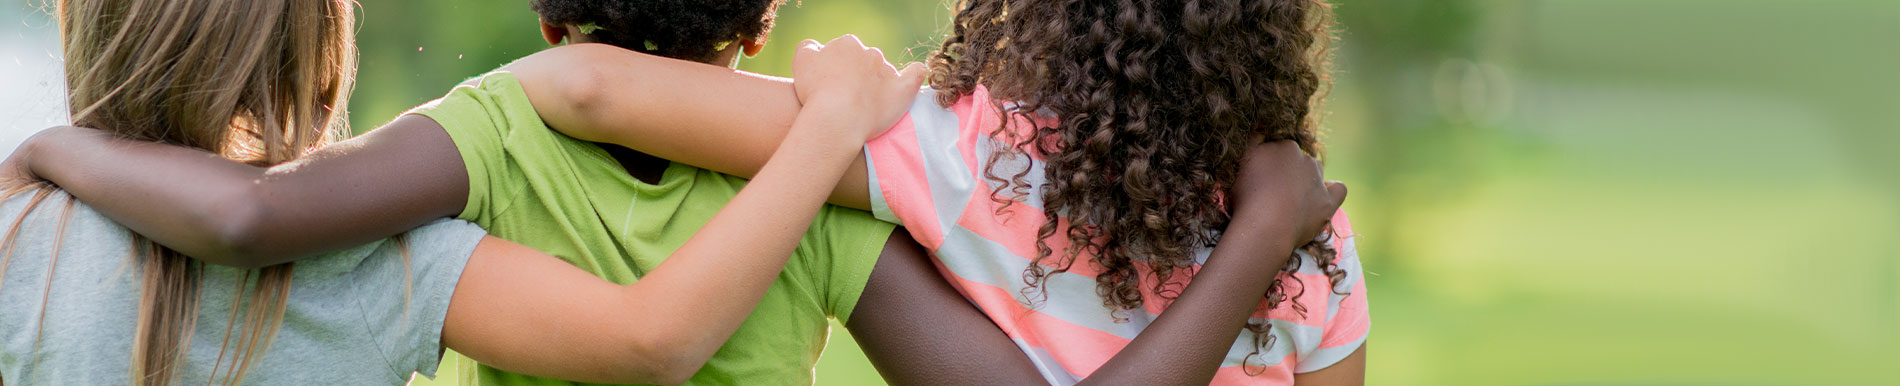 https://www.healthychildren.org/SiteCollectionImage-Homepage-Banners/racism-banner.jpg?csf=1&e=gLc8aG